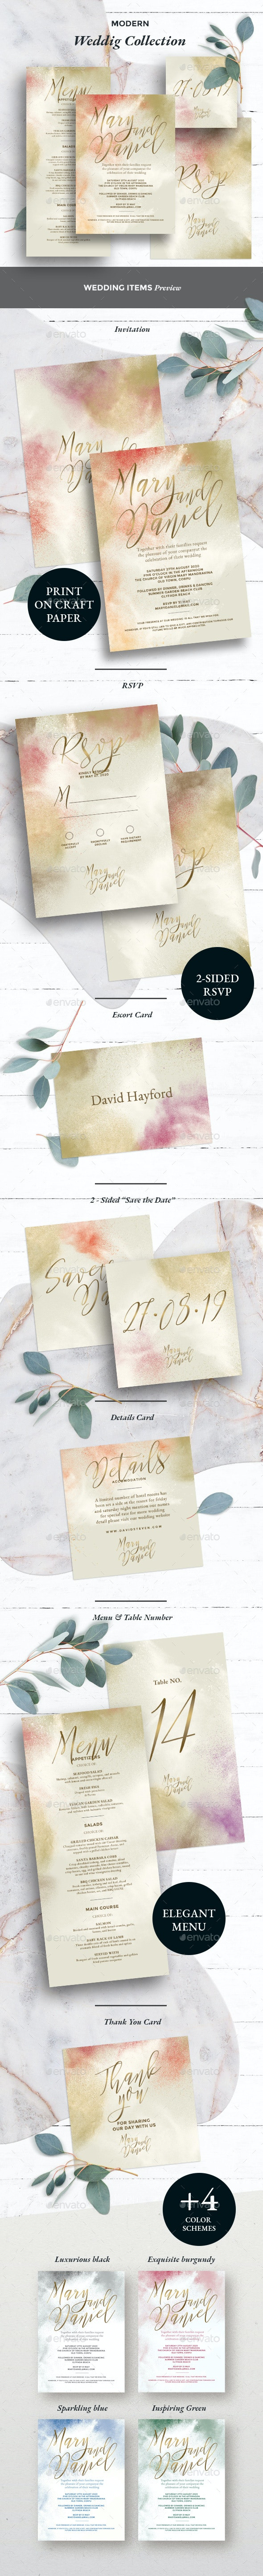 Wedding Collection - Weddings Cards & Invites